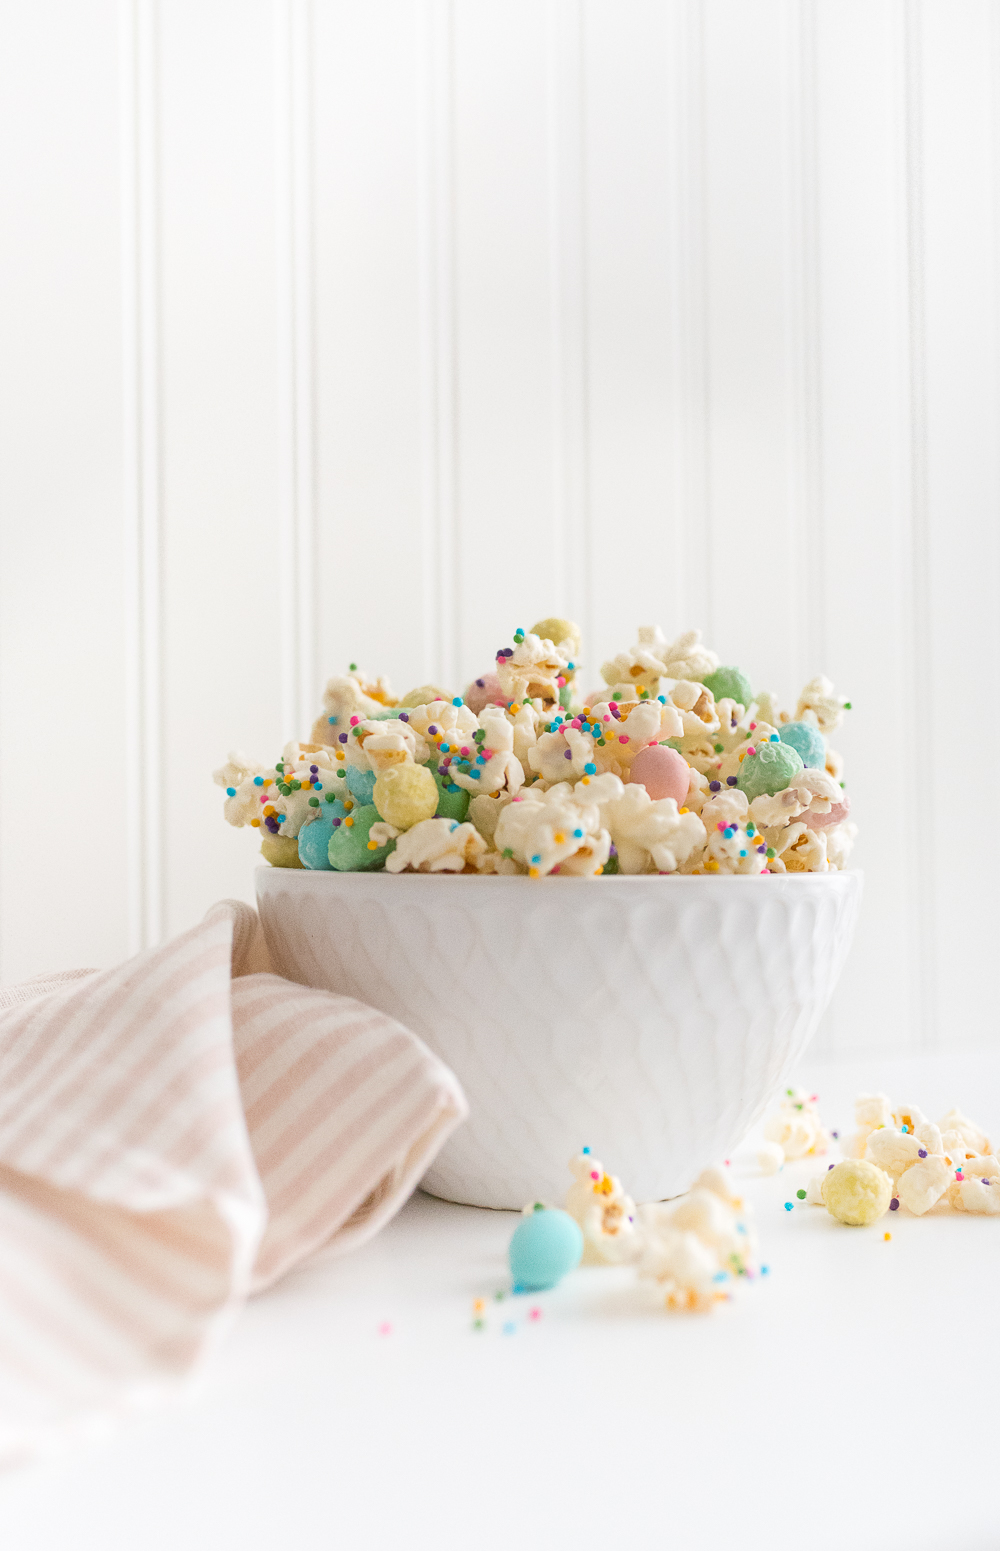 Popcorn drizzled in melted white chocolate and mixed with mini eggs and sprinkles is a fun and sweet treat for Easter, find the easy recipe here.